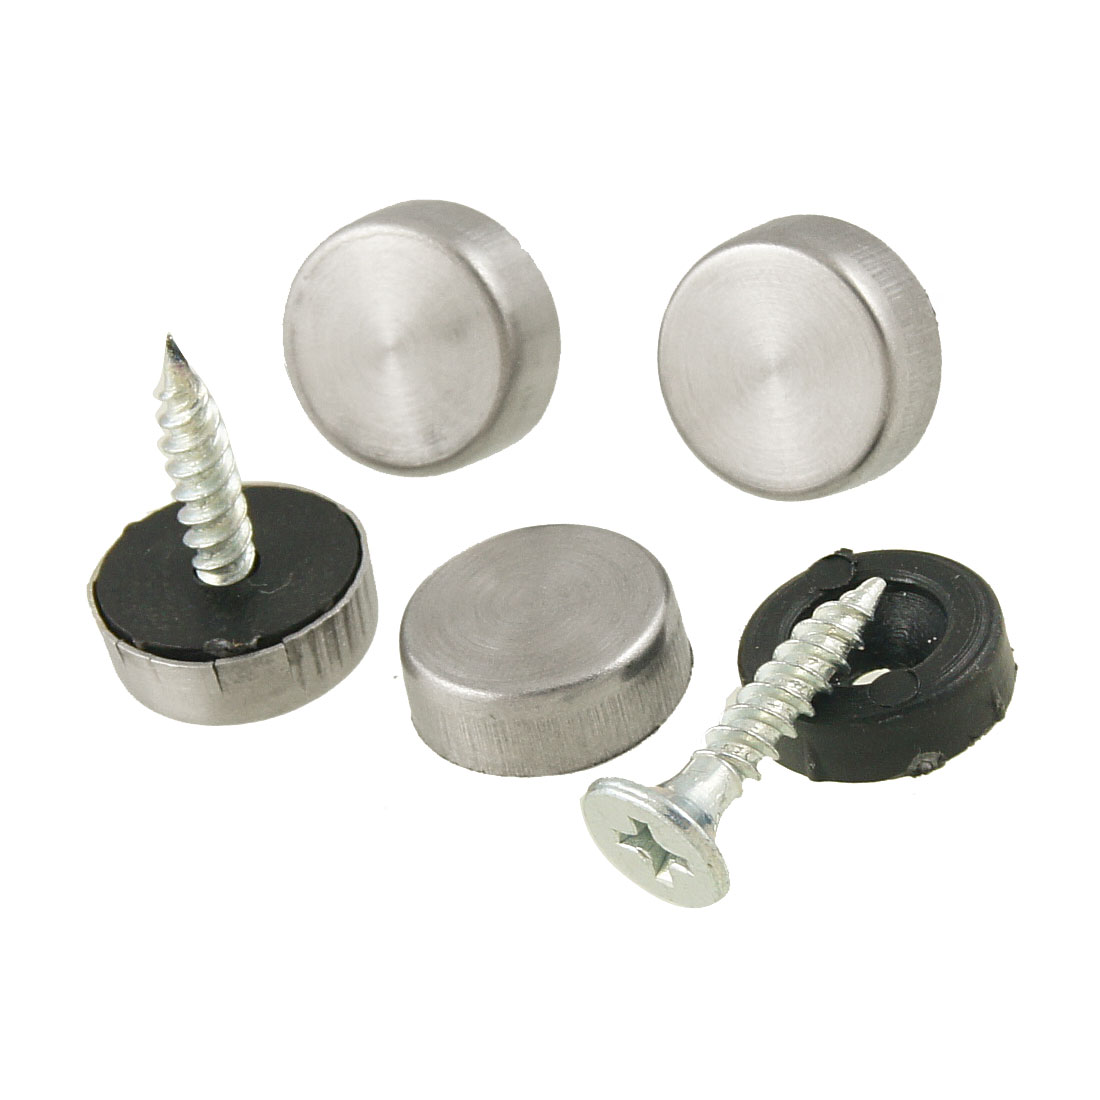 4 Pcs 3mm Dia Screws Metal Silver Tone Flat Head Mirror Caps